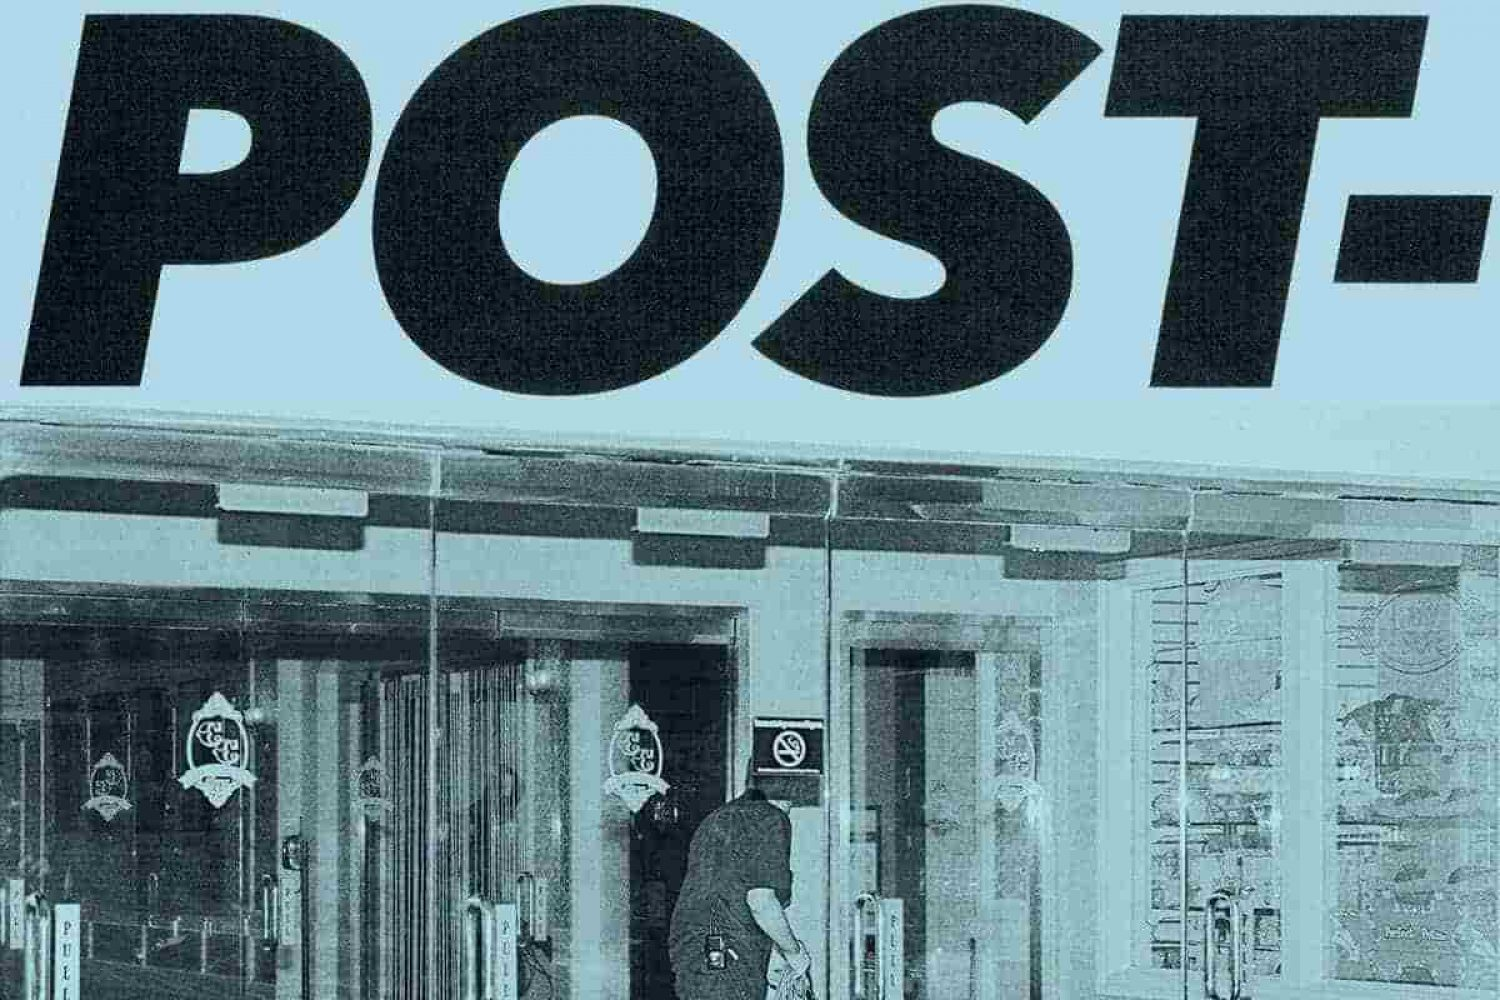 Surprise! Grab the new Jeff Rosenstock album 'POST-' for whatever price you fancy